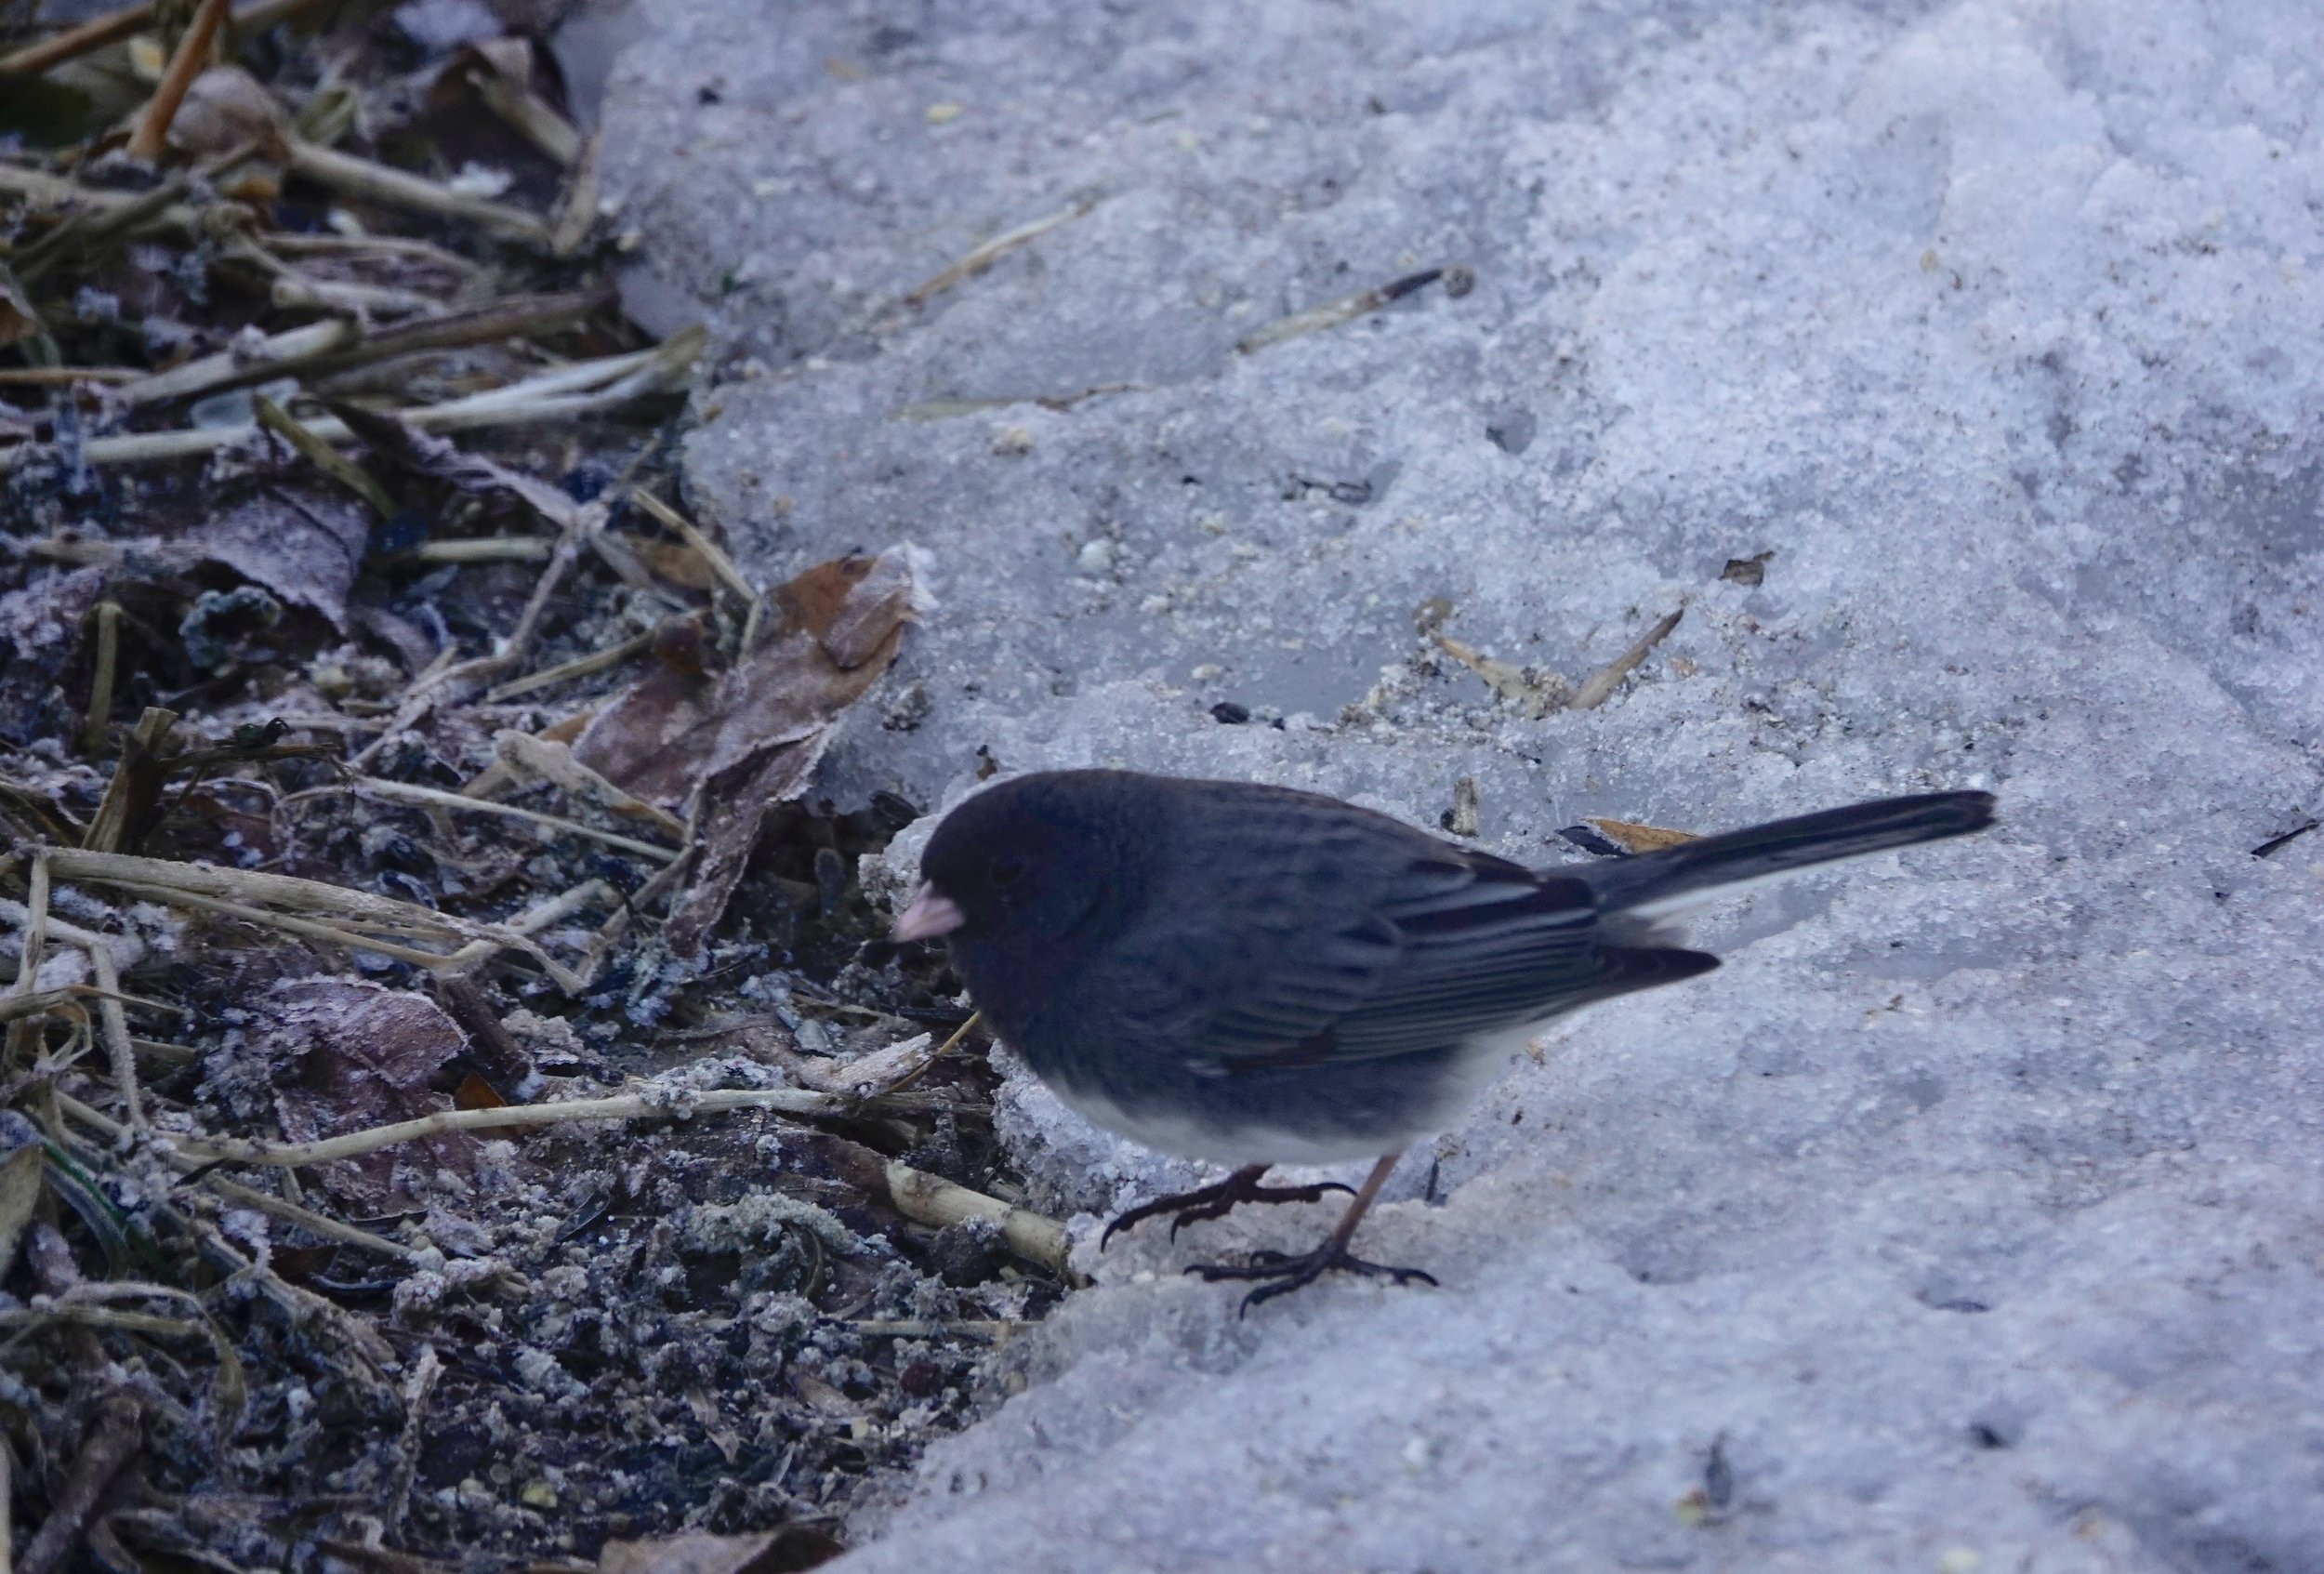 The junco of winter approaches spring.